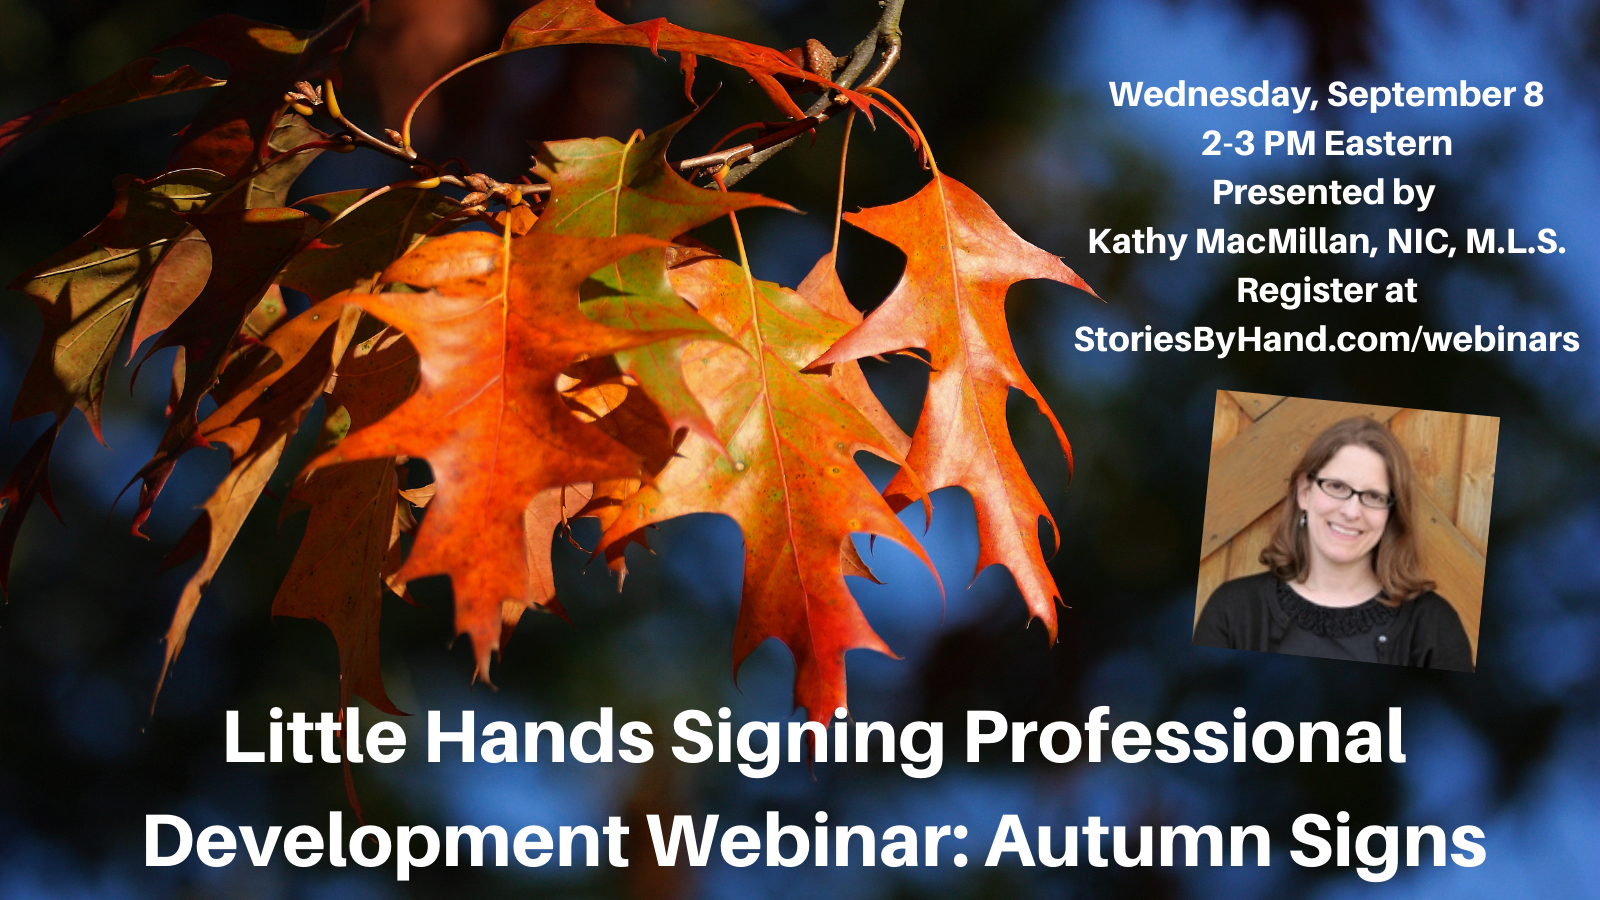 Brightly colored autumn leaves appear against a blue background with a photo of a smiling white woman. Text reads: Little Hands Signing Professional Development Webinar: Autumn Signs. Wednesday, September 8. 2-3 PM Eastern. Presented by KathyMacMillan, NIC, MLS. Register at StoriesByHand.com/webinars